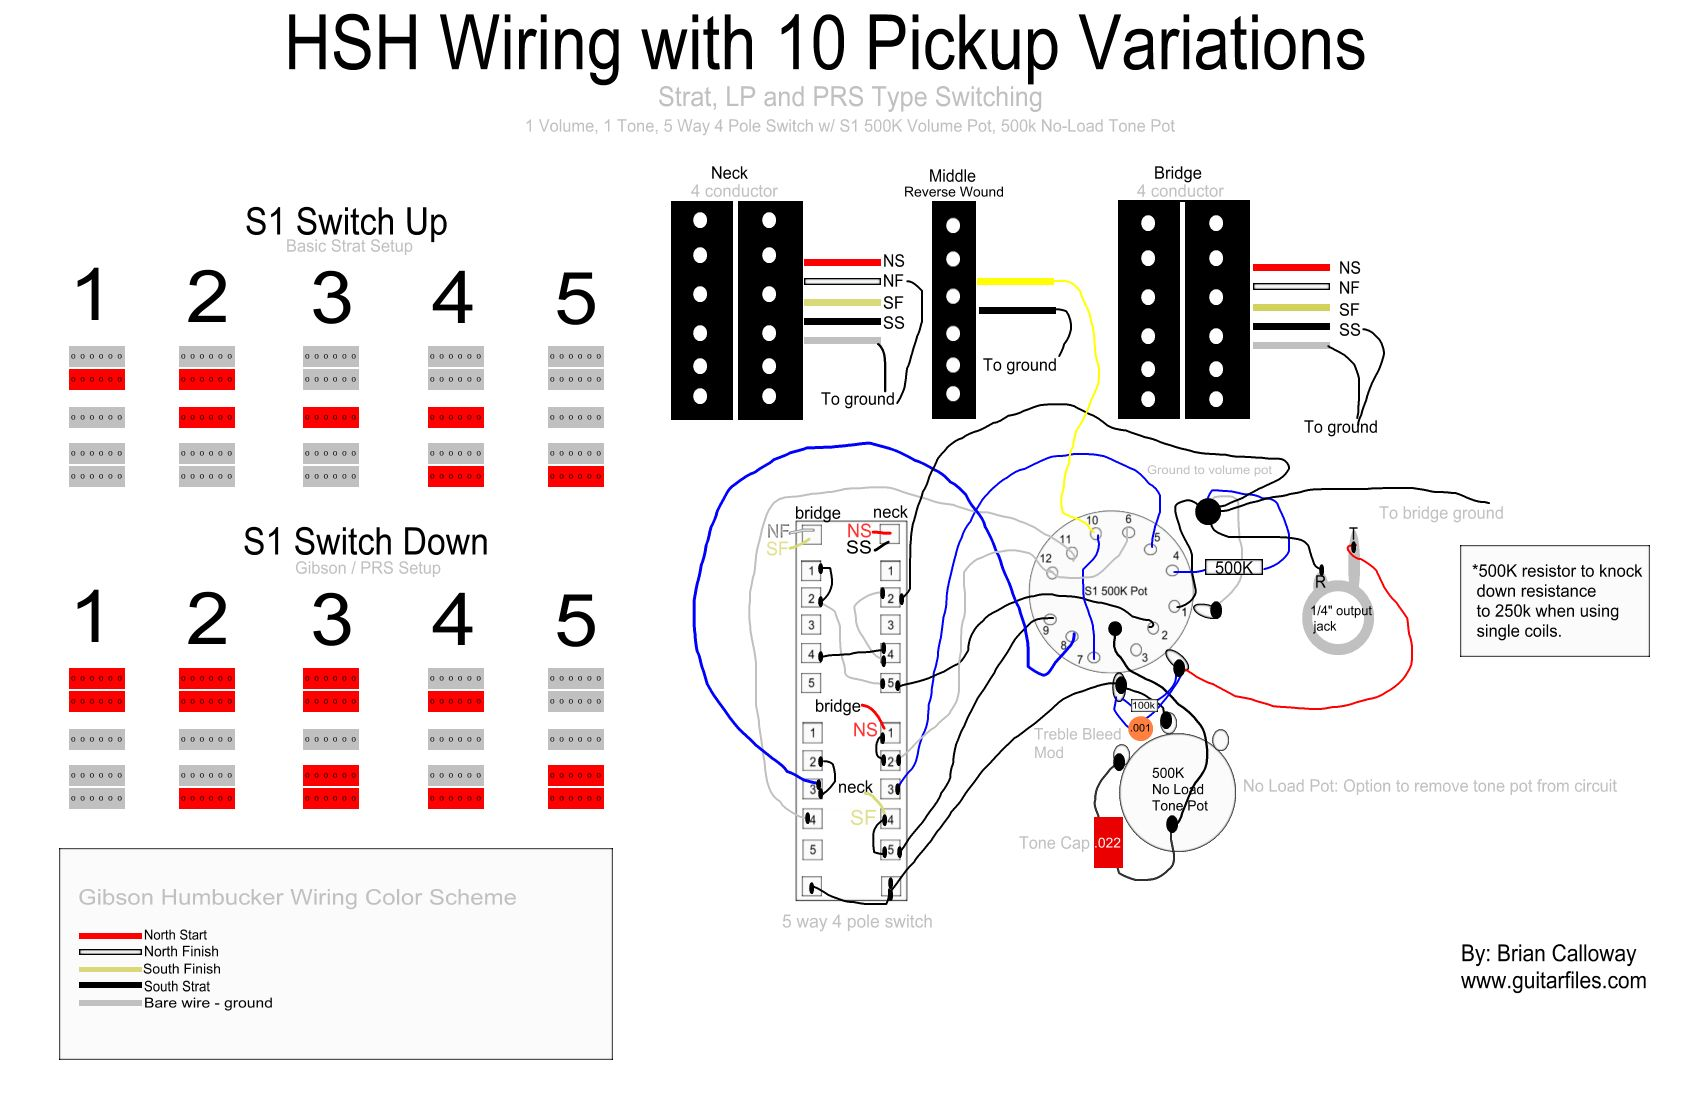 Hsh Pickup Wiring 3 Diagram Schematics Emg Telecaster Guitar 10 Combinations 4 Pole Switch And S1